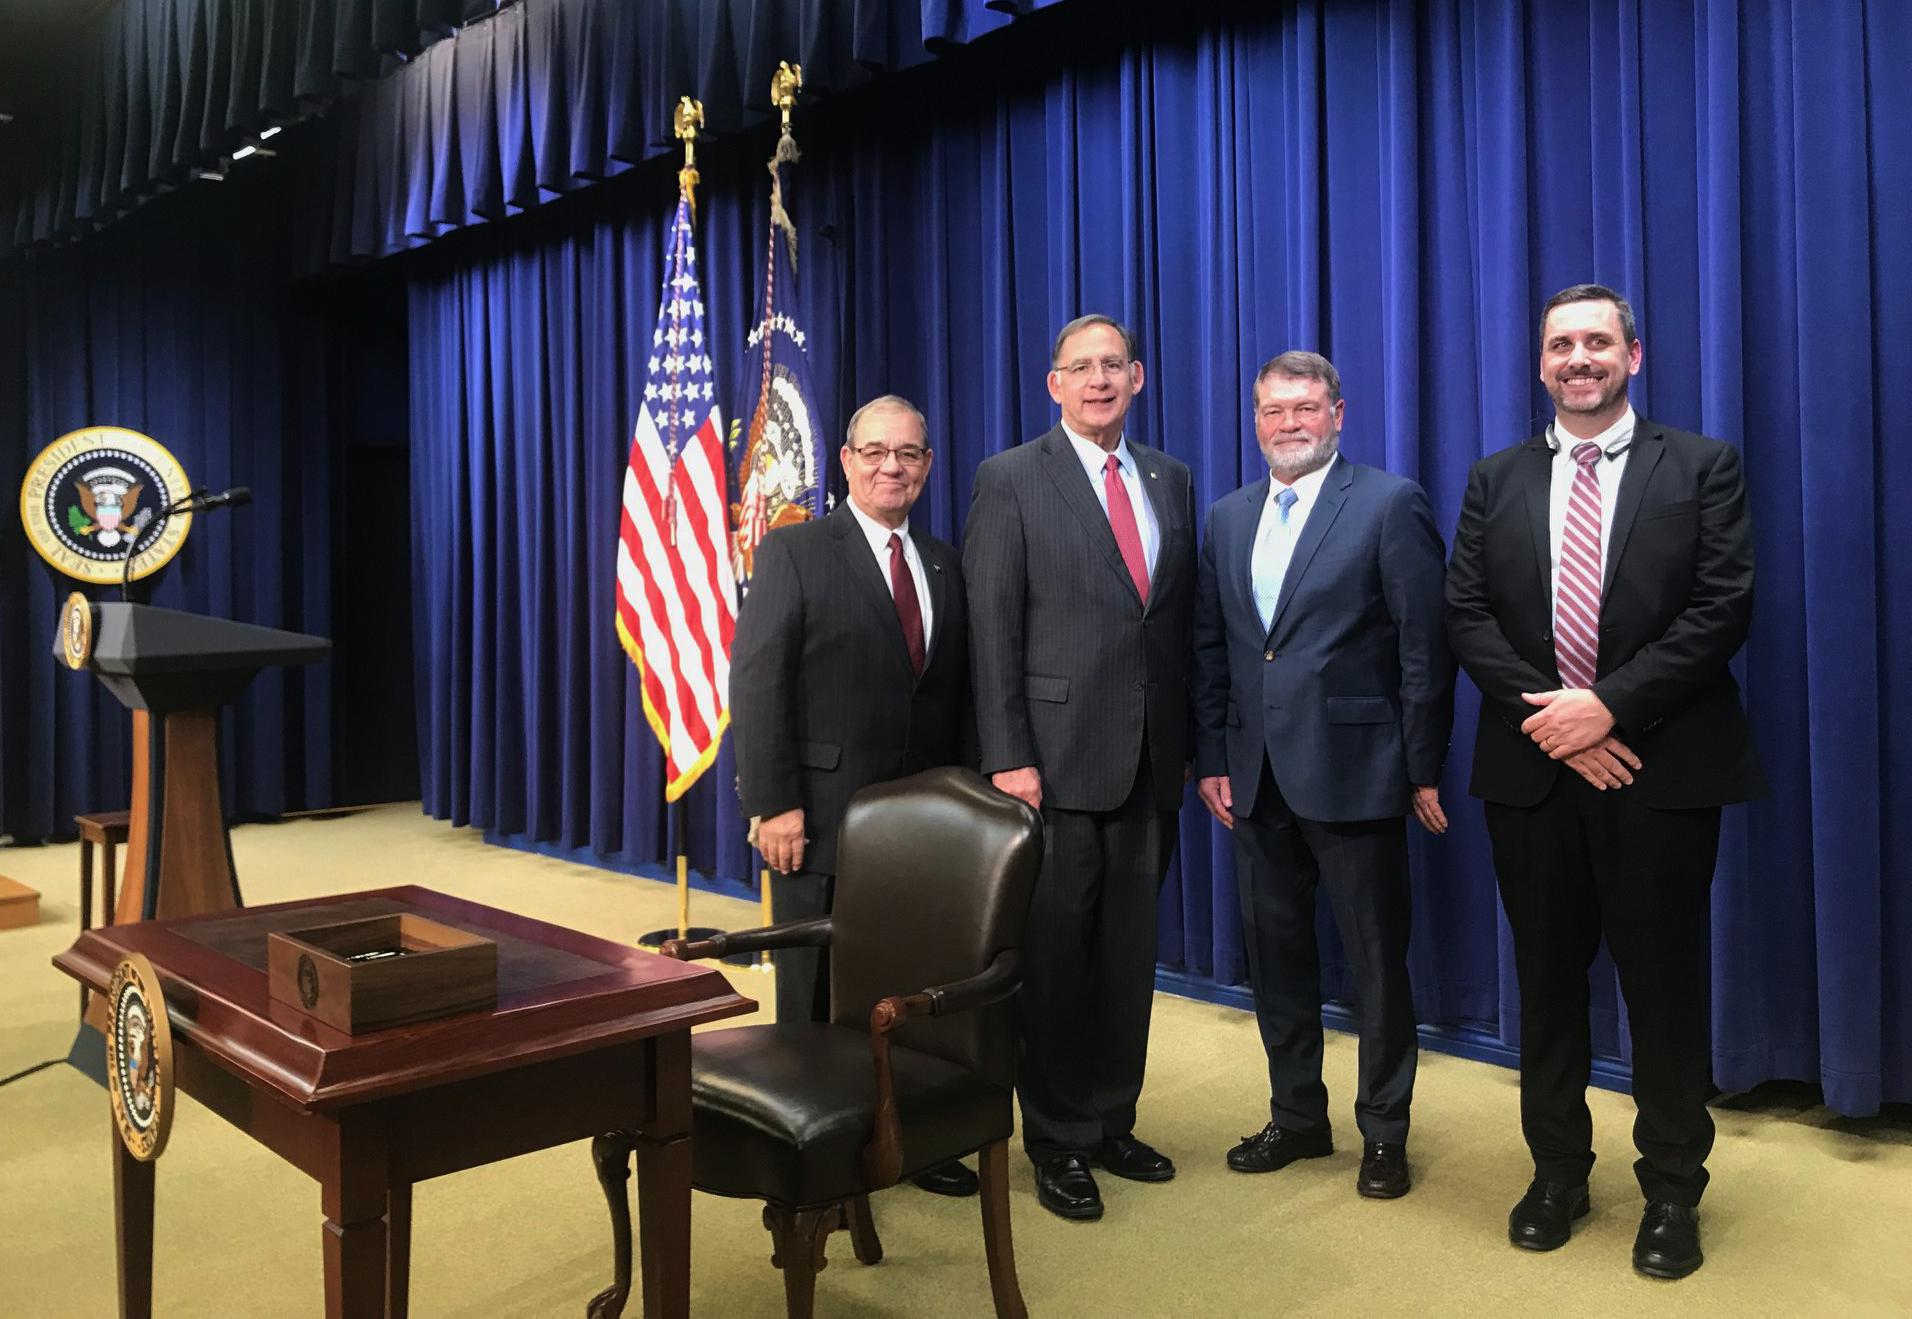 Senator Boozman, along with Arkansas Farm Bureau representatives President Randy Veach, Board Member Terry Dabbs and Director of Government Affairs Matt King, attended the 2018 Farm Bill signing ceremony at the White House